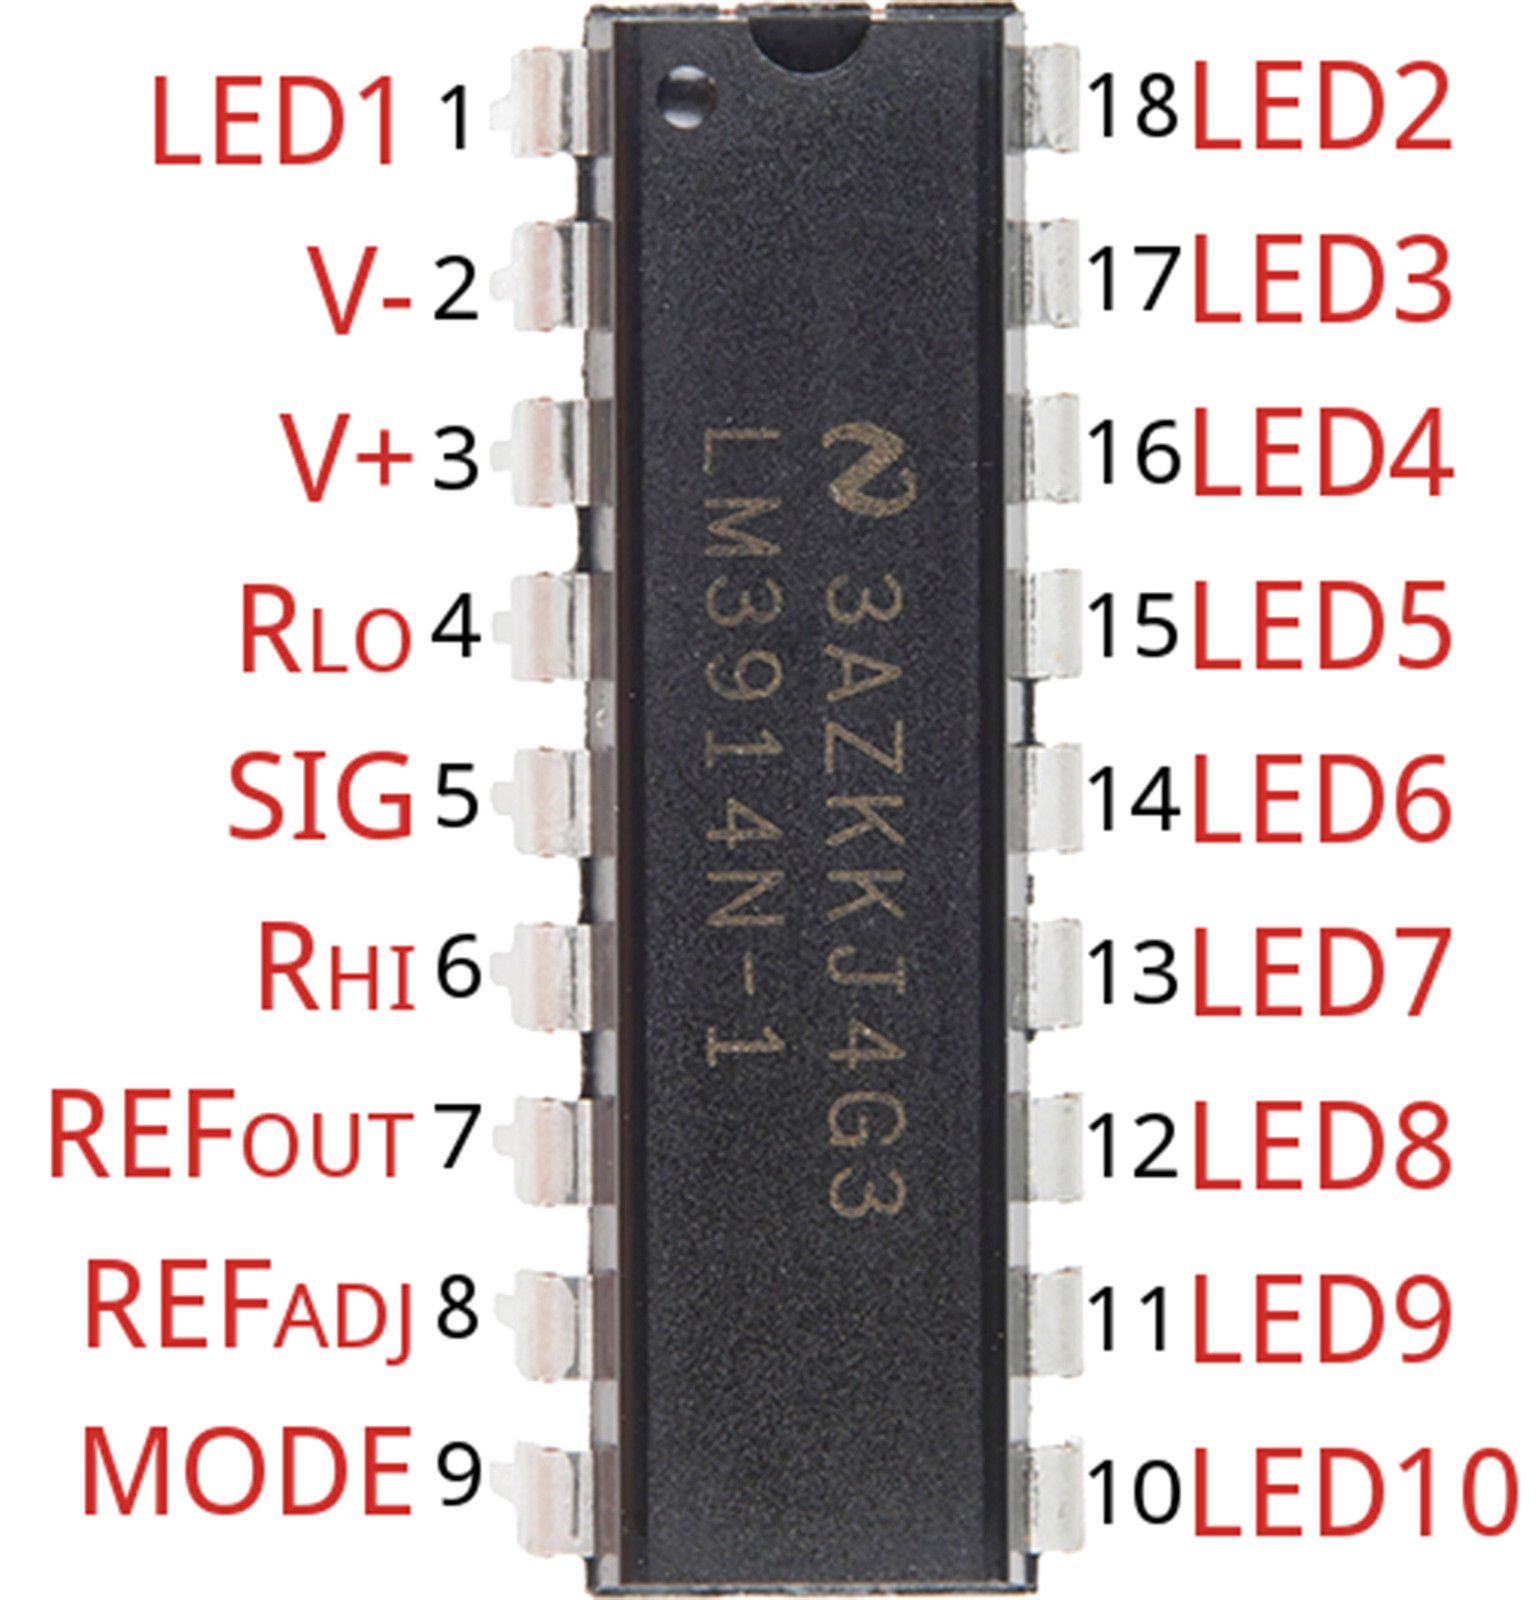 Lm3914 Dot Bar Led Display Driver Dip18 All Top Notch Basic Circuit For